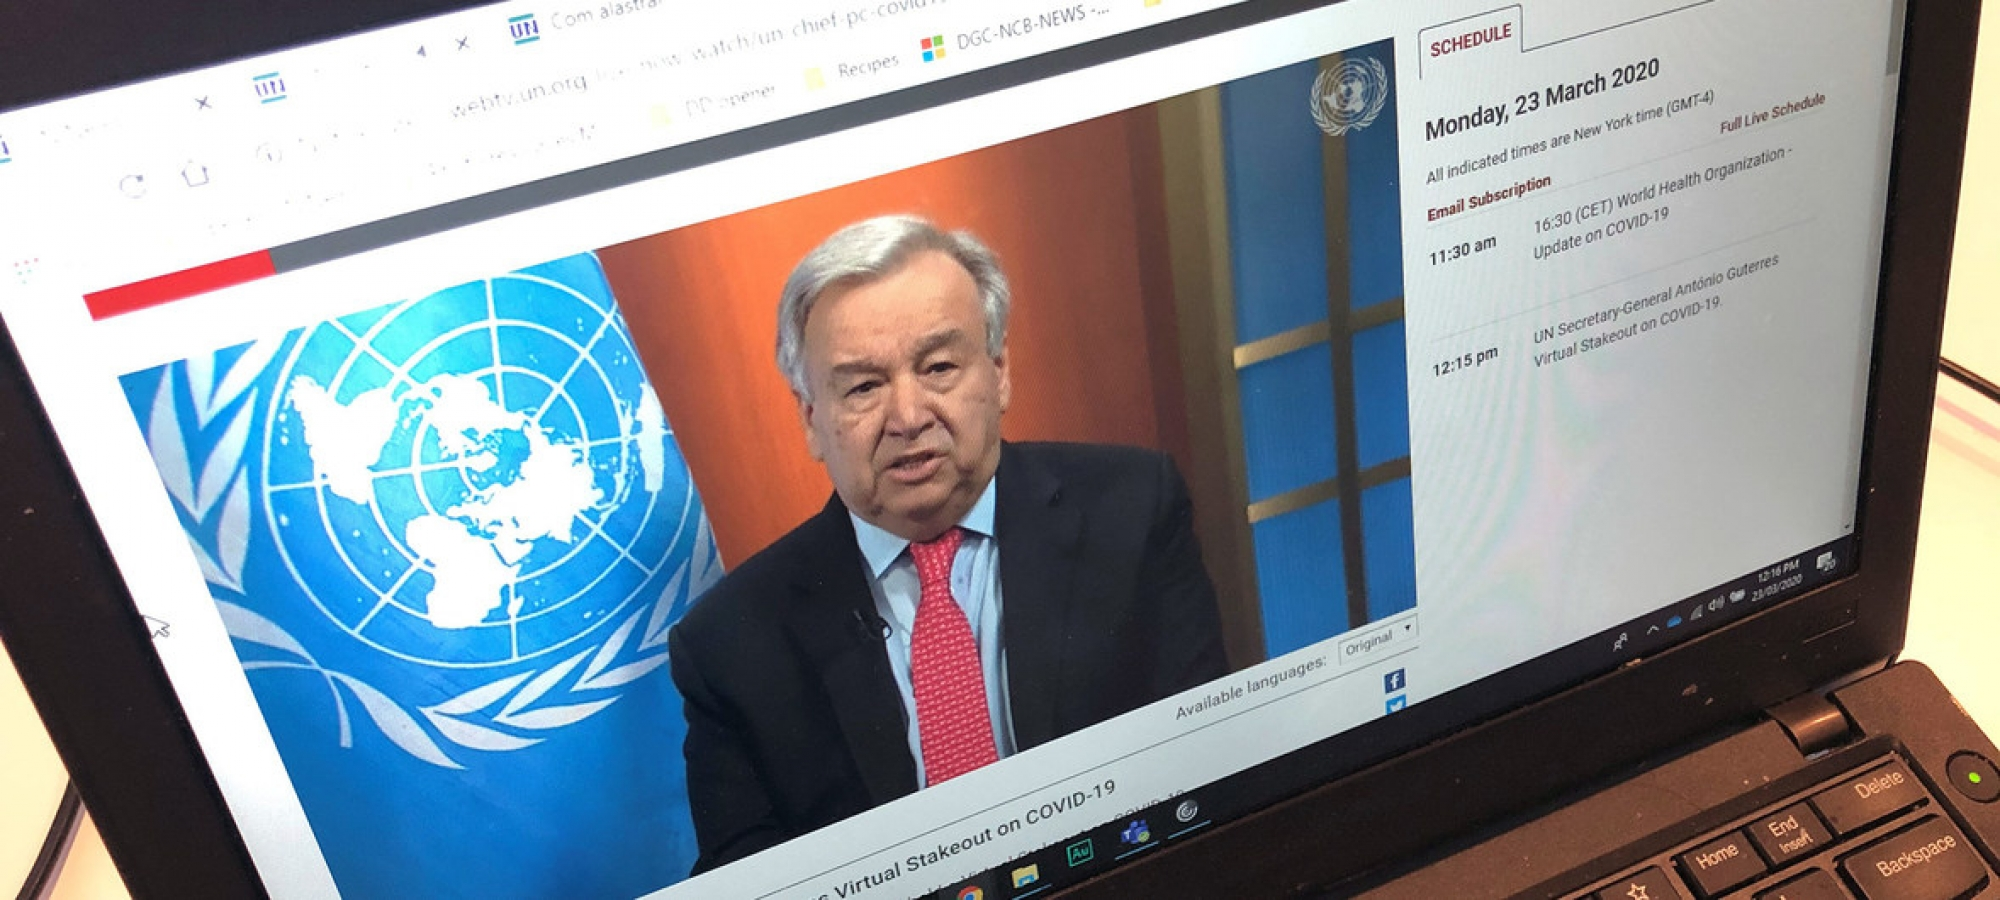 The UN Secretary-General António Guterres appeals for a global ceasefire in a virtual press conference broadcast on UN Web TV.